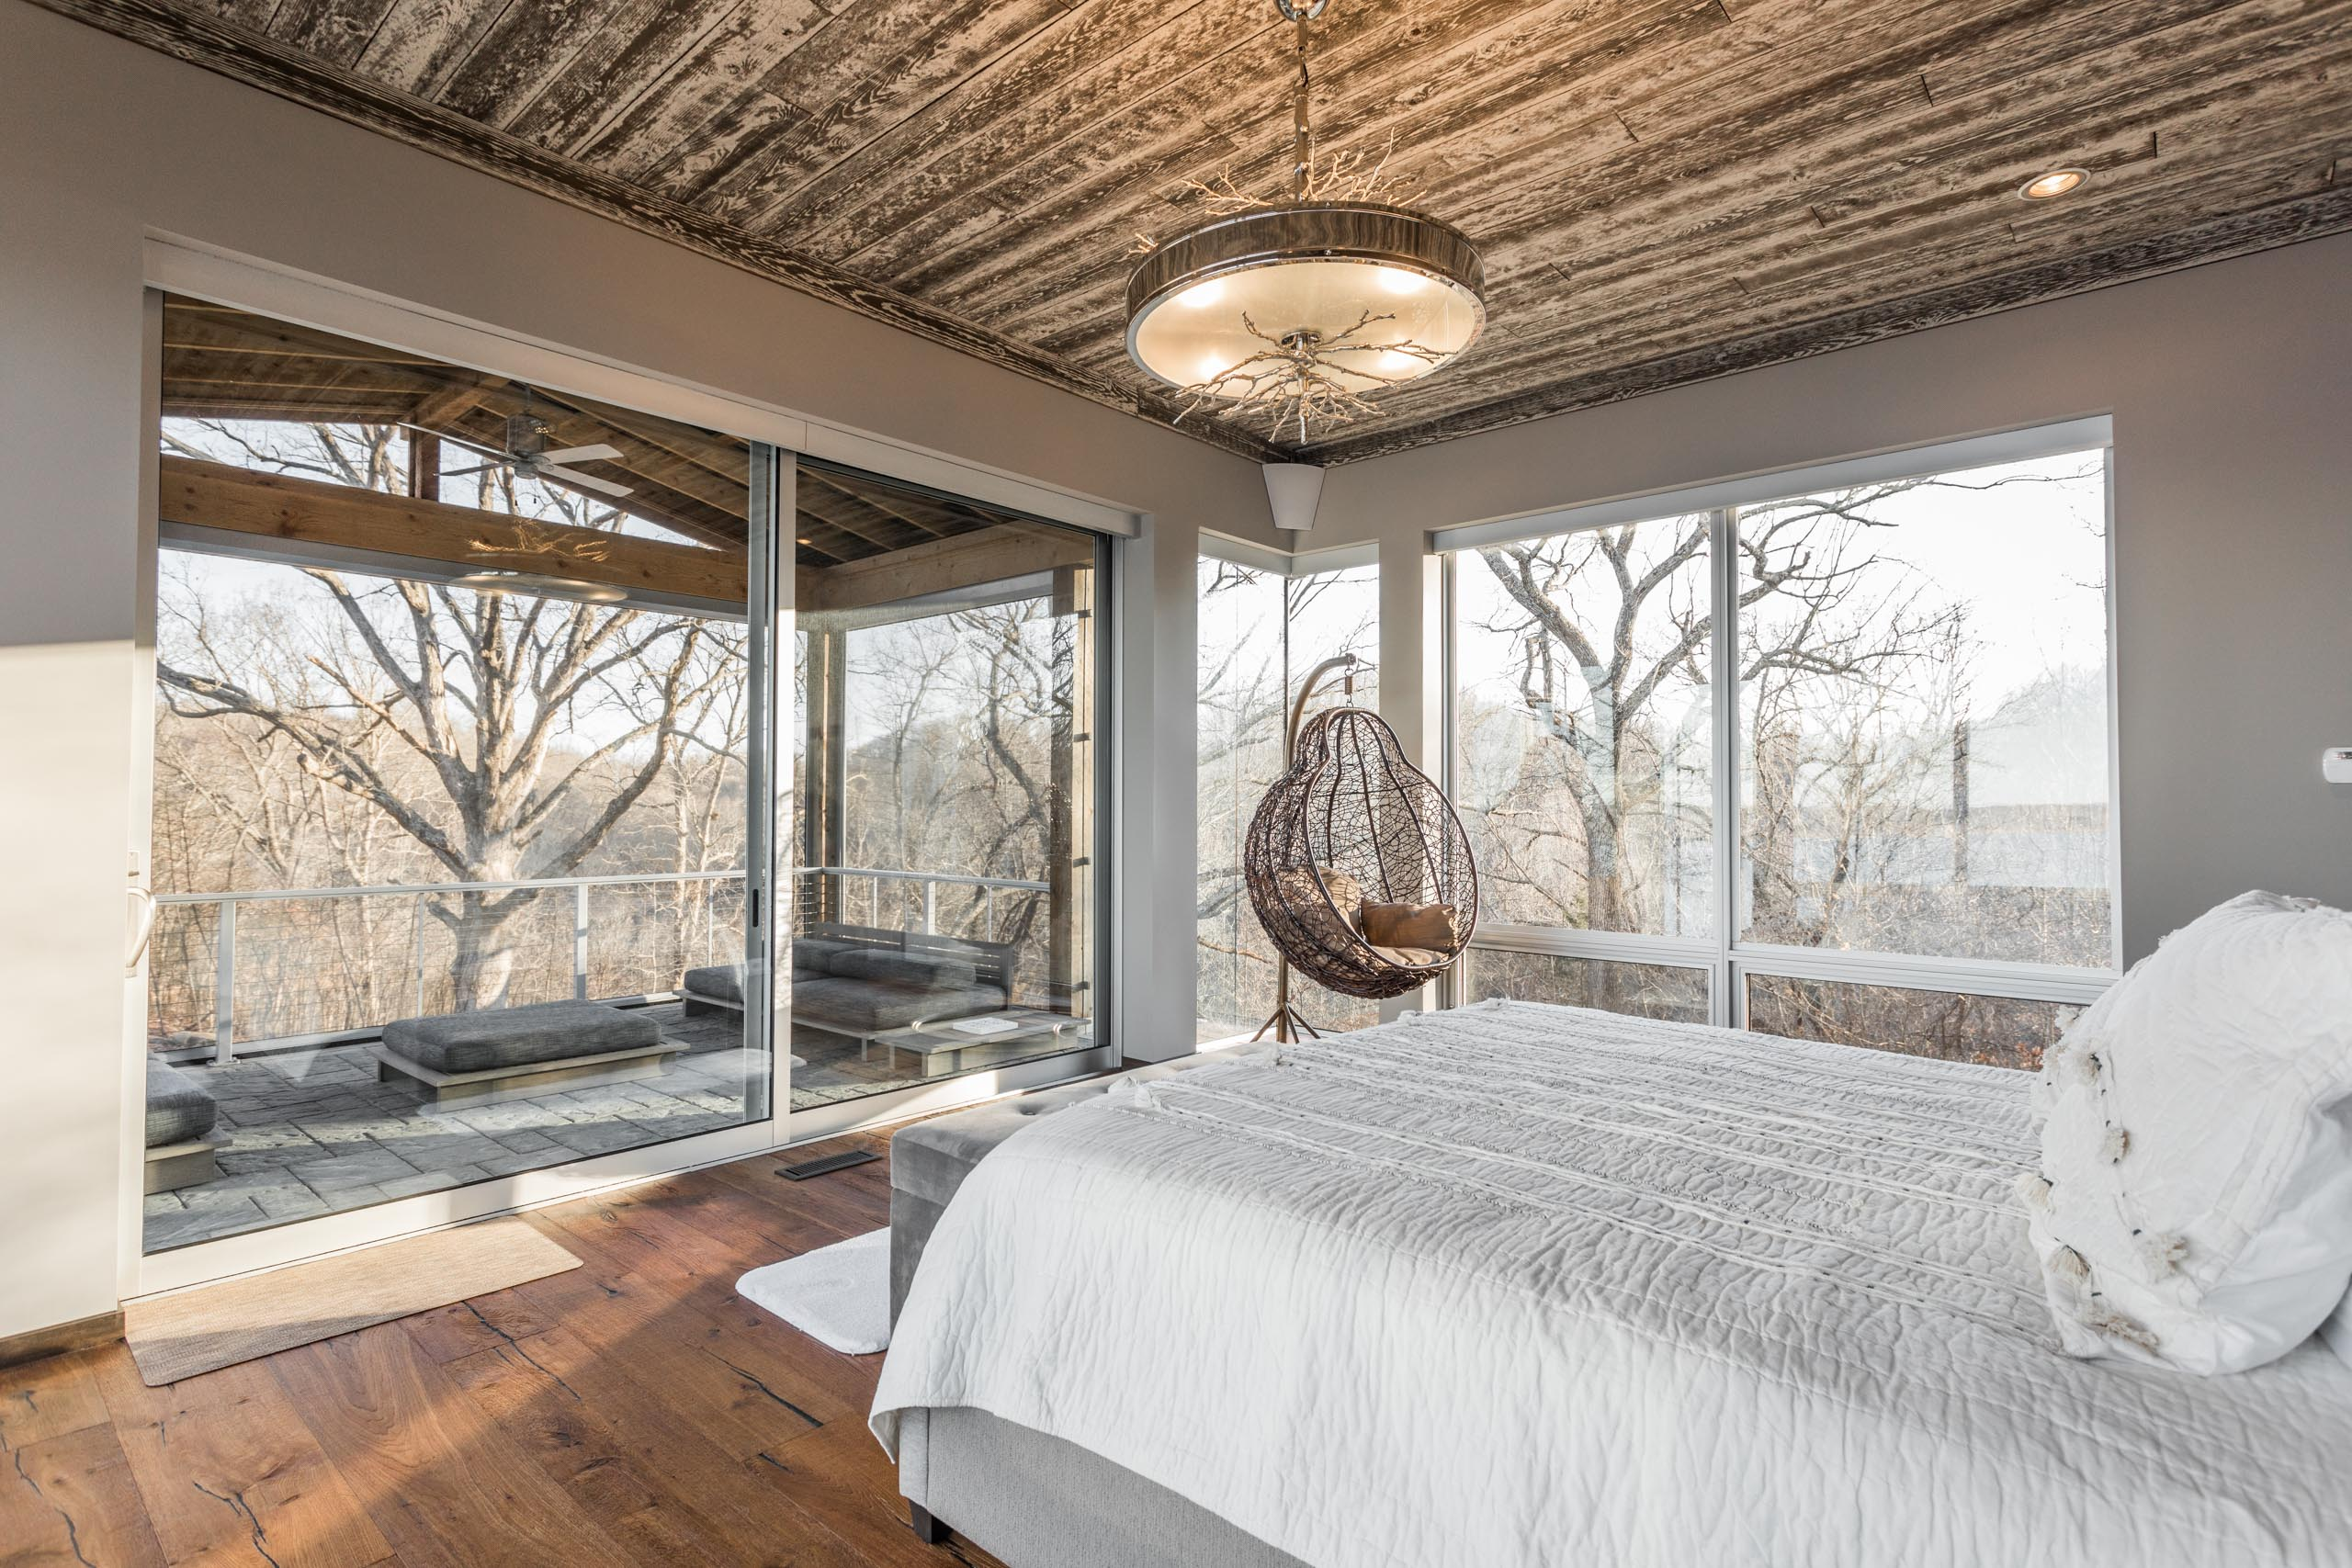 Huge panels of glass bring the outdoors in to this cozy bedroom.